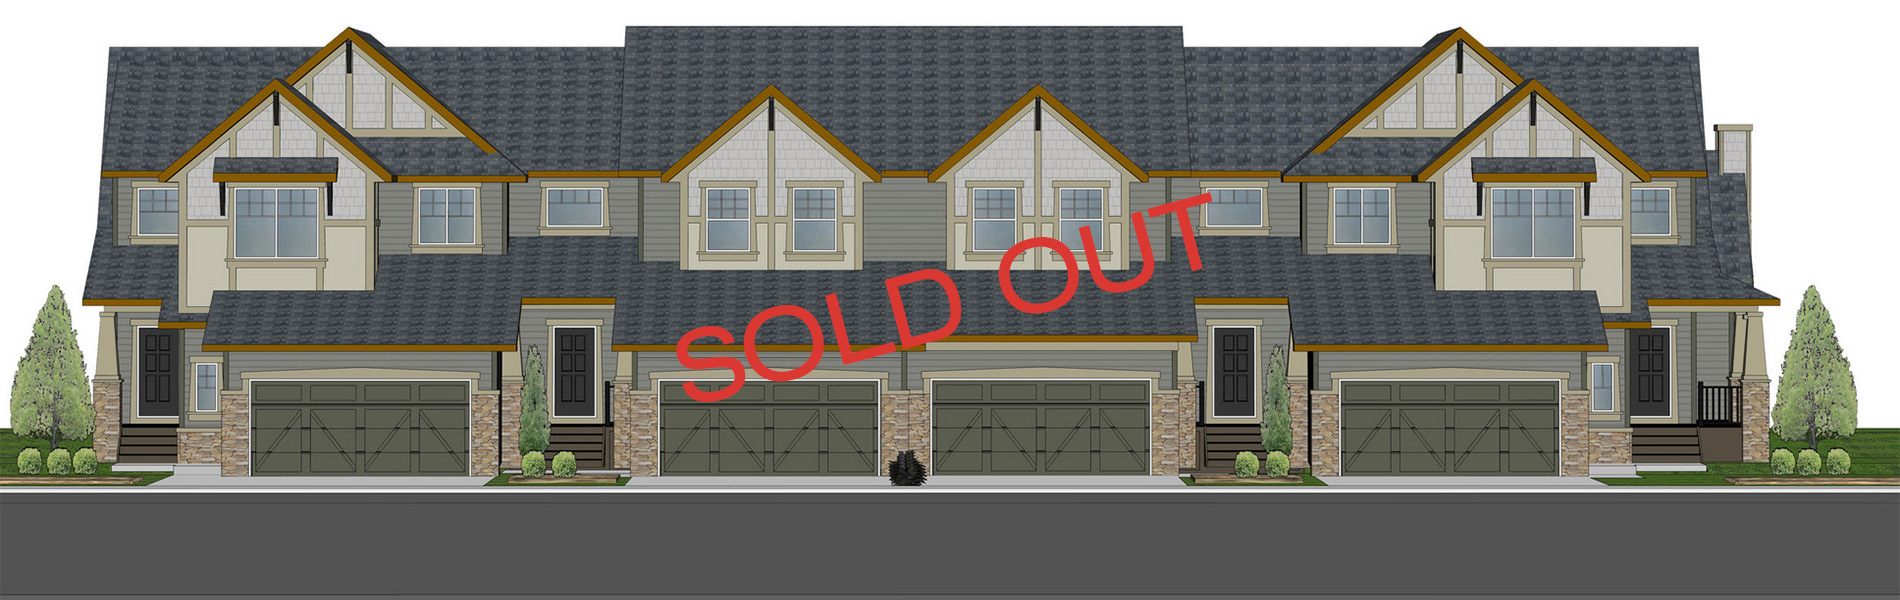 CoopersTownhomes_SoldOut.jpg